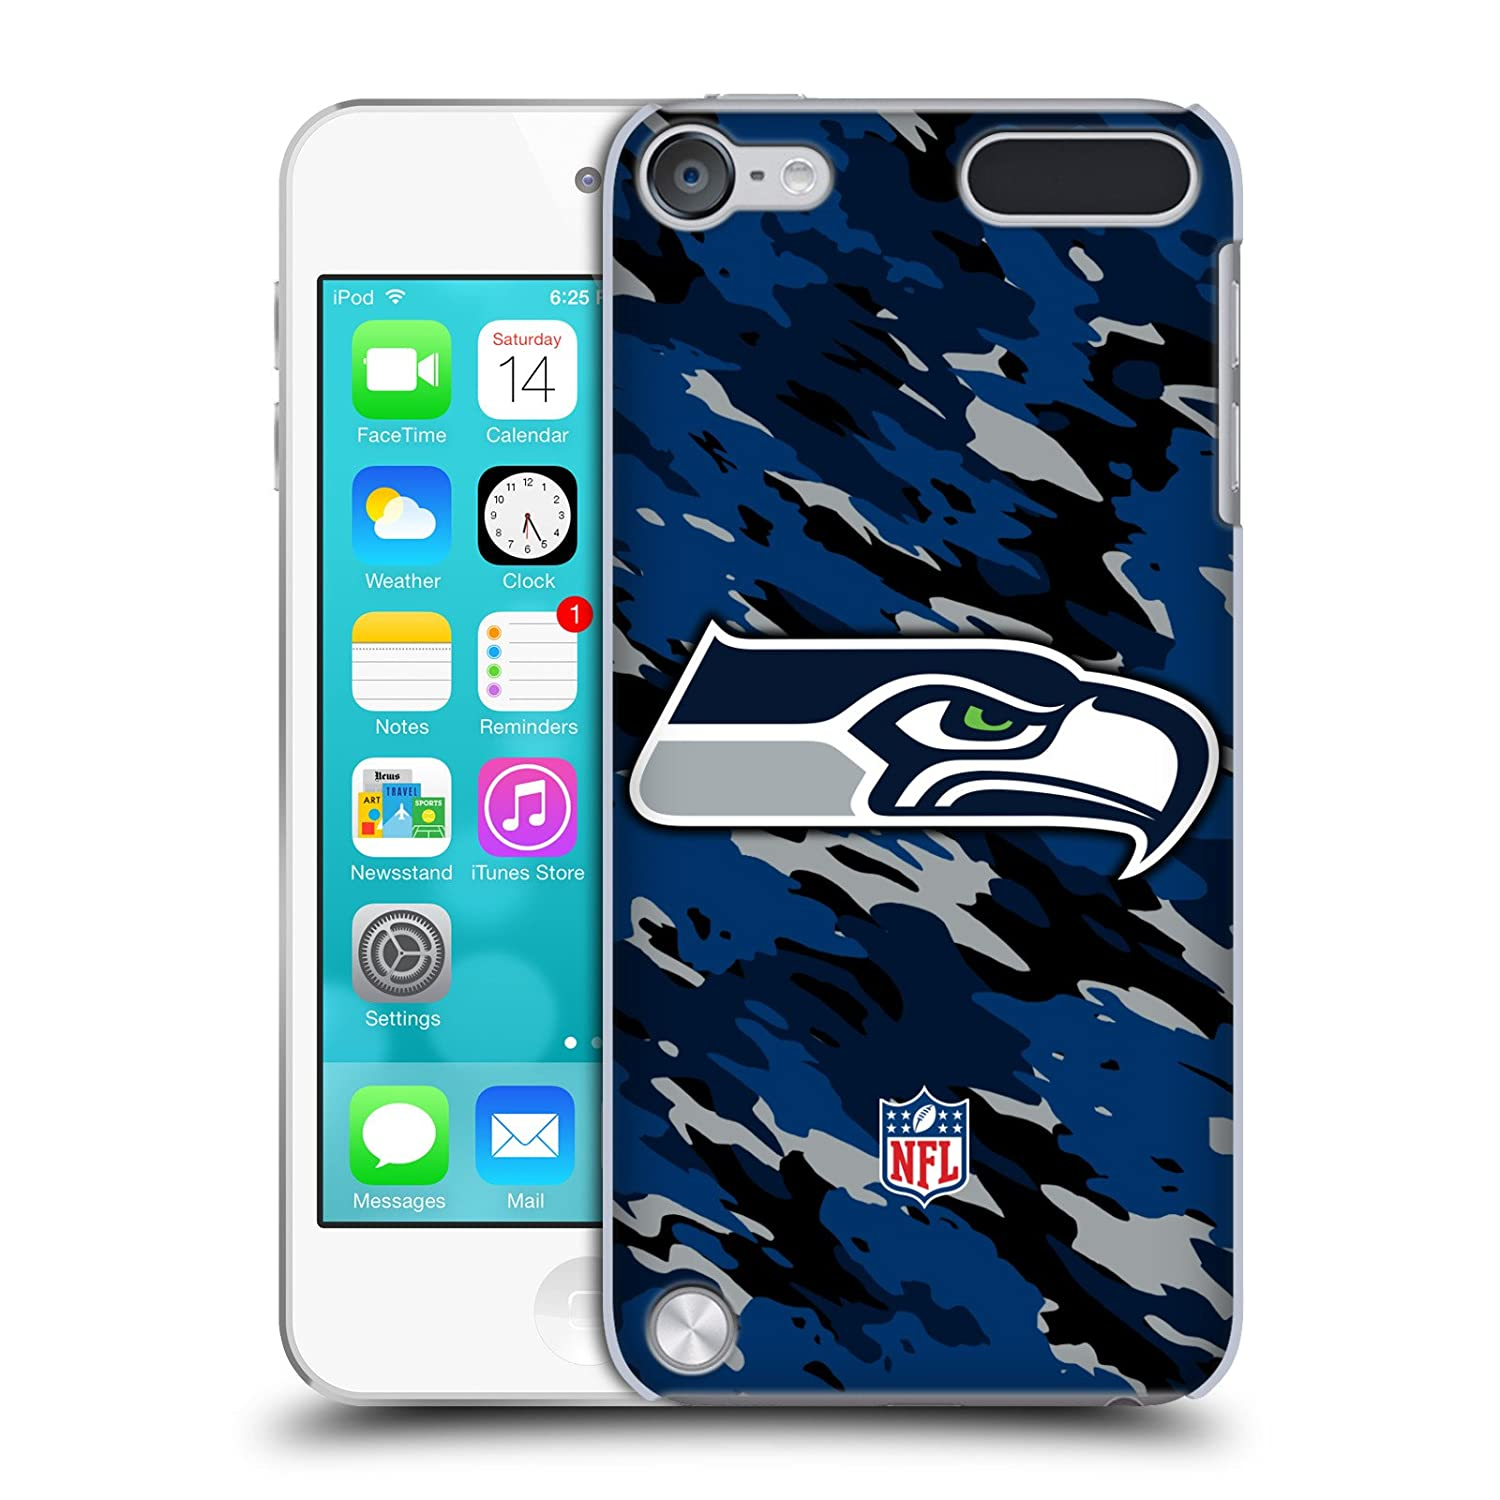 Official NFL Camou Seattle Seahawks Logo Hard Back Case for iPod Touch 5th Gen / 6th Gen HC-TOUCH5G-NFLLOSSE-CAM